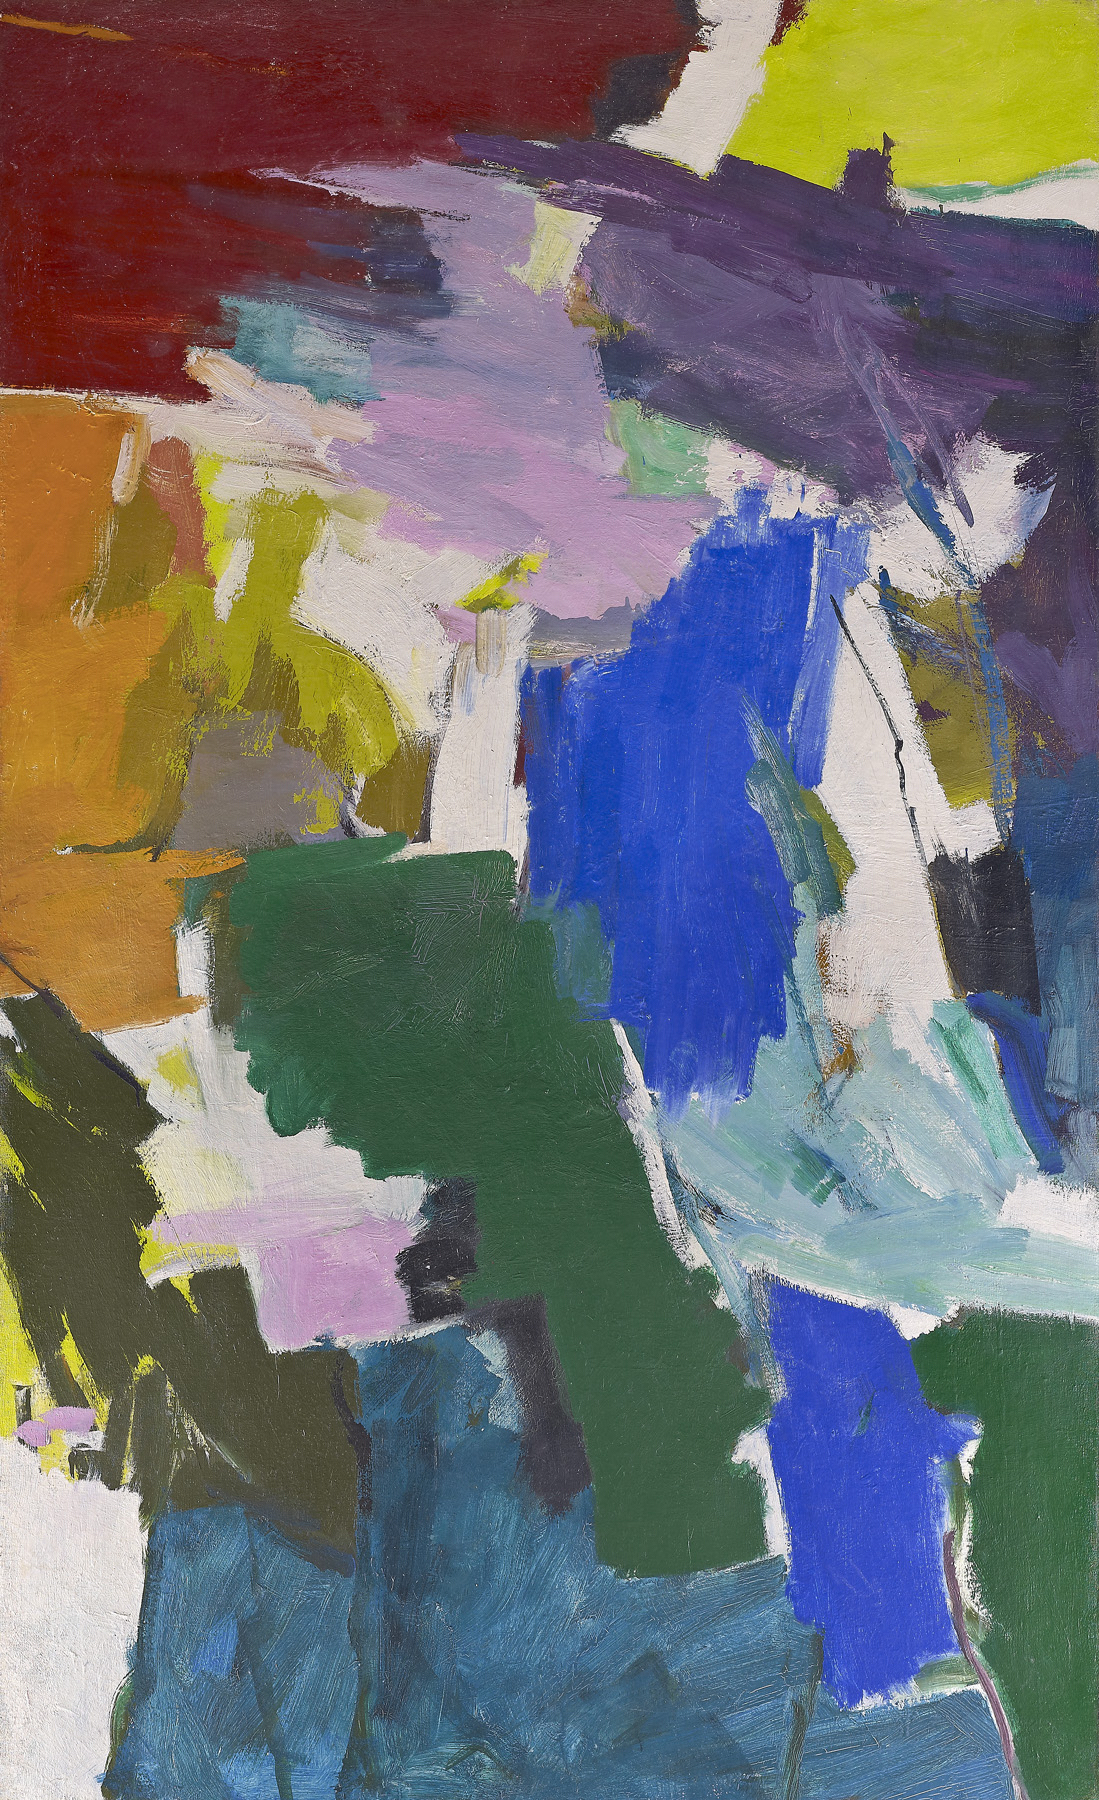 62-2 ,   Oil on canvas, 1962, 77 x 47 1/2 inches